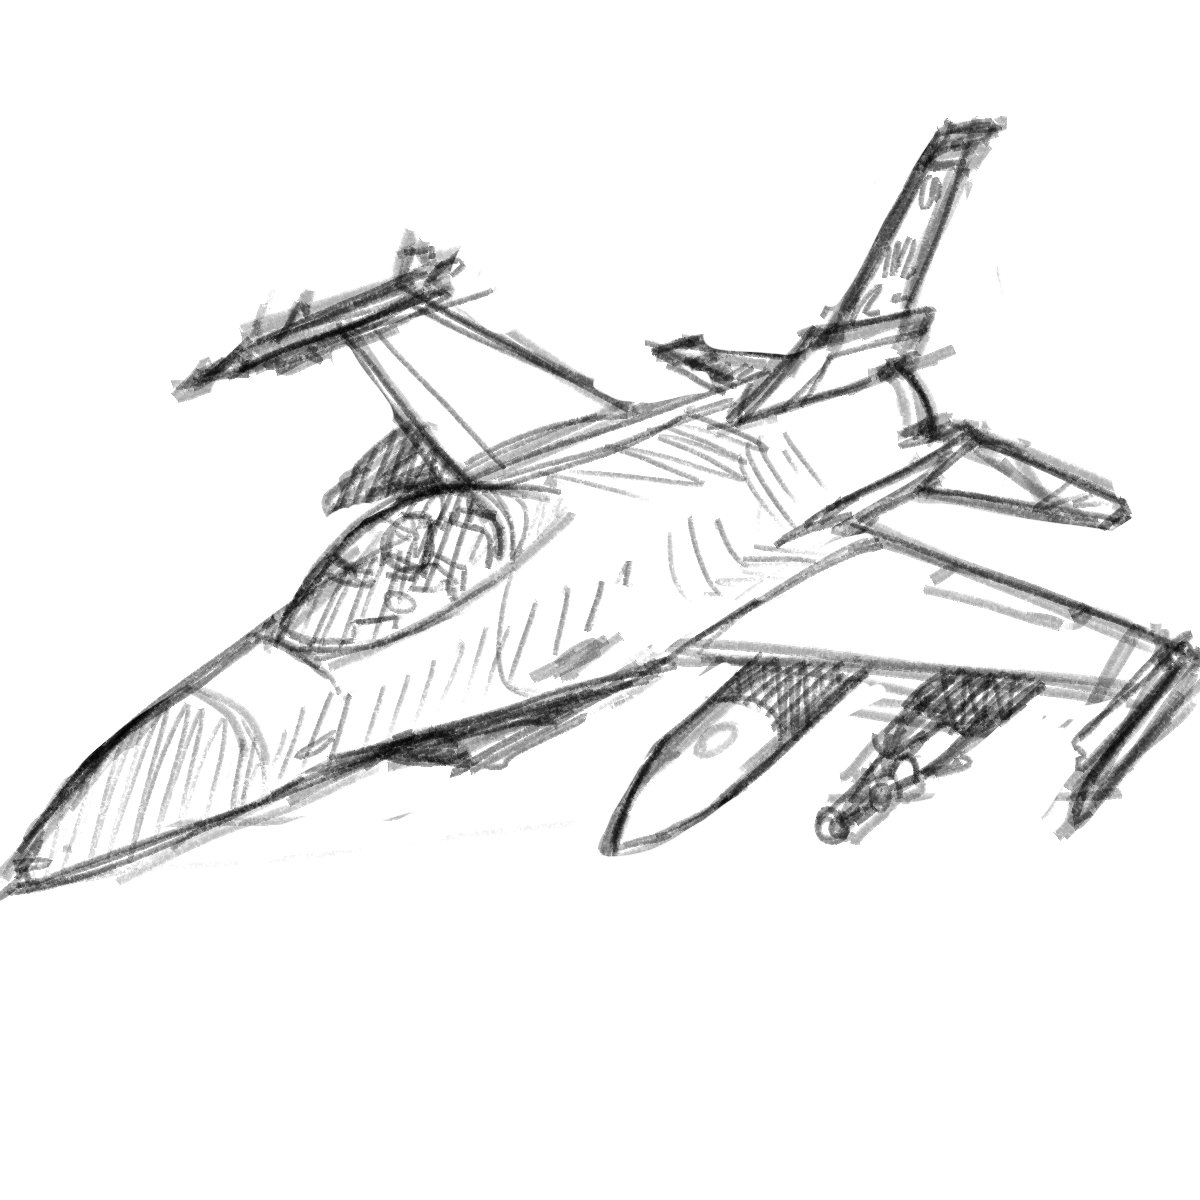 jib on twitter drawing fighter jets makes me feel 10 sketch twitchcreates httpstcon4u03eqvbf